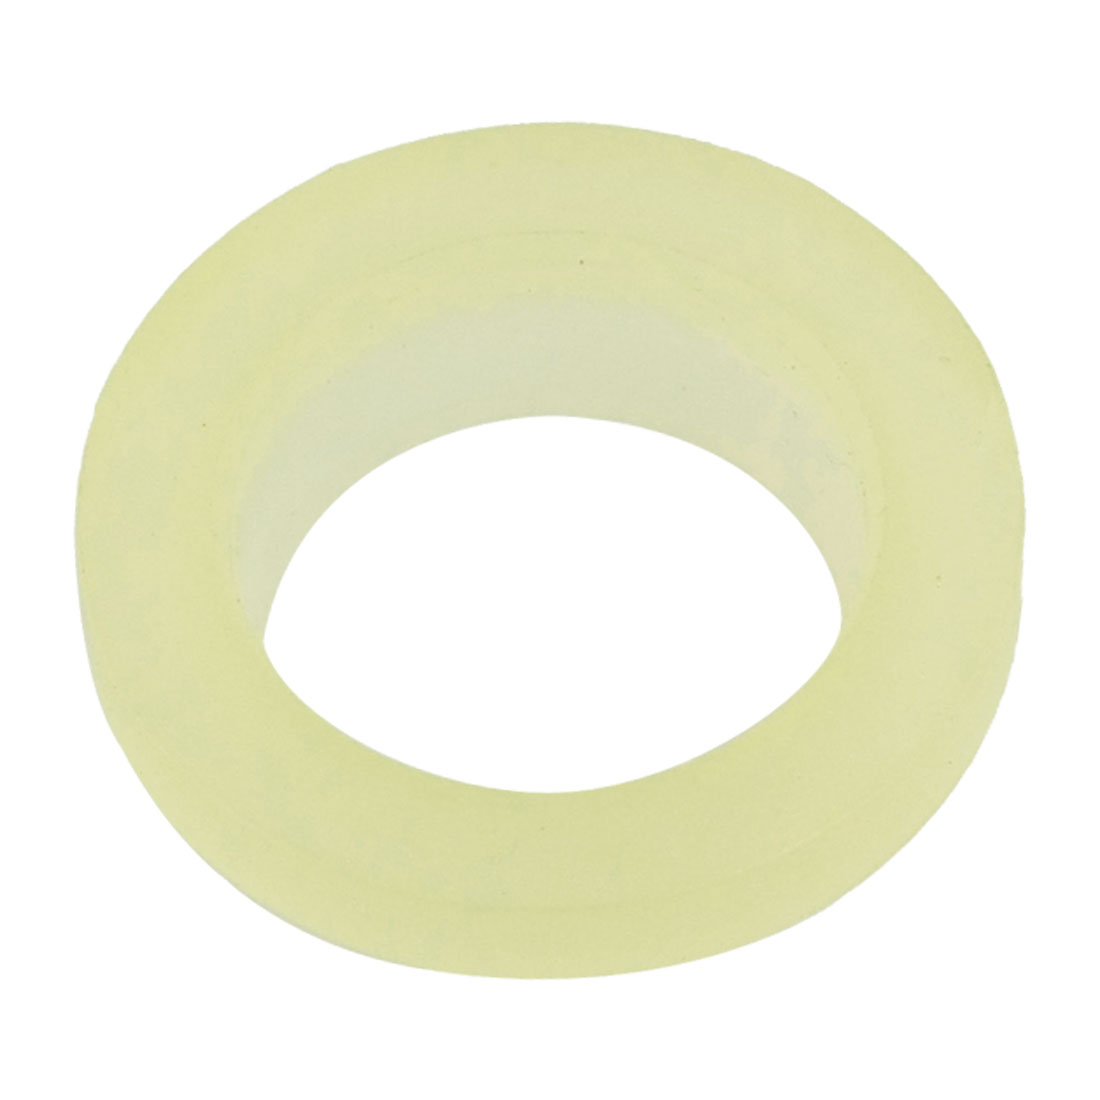 Hydraulic Cylinder J Polyurethane Sealing Ring Dust Seal 22 x 34 x 5 x 10mm